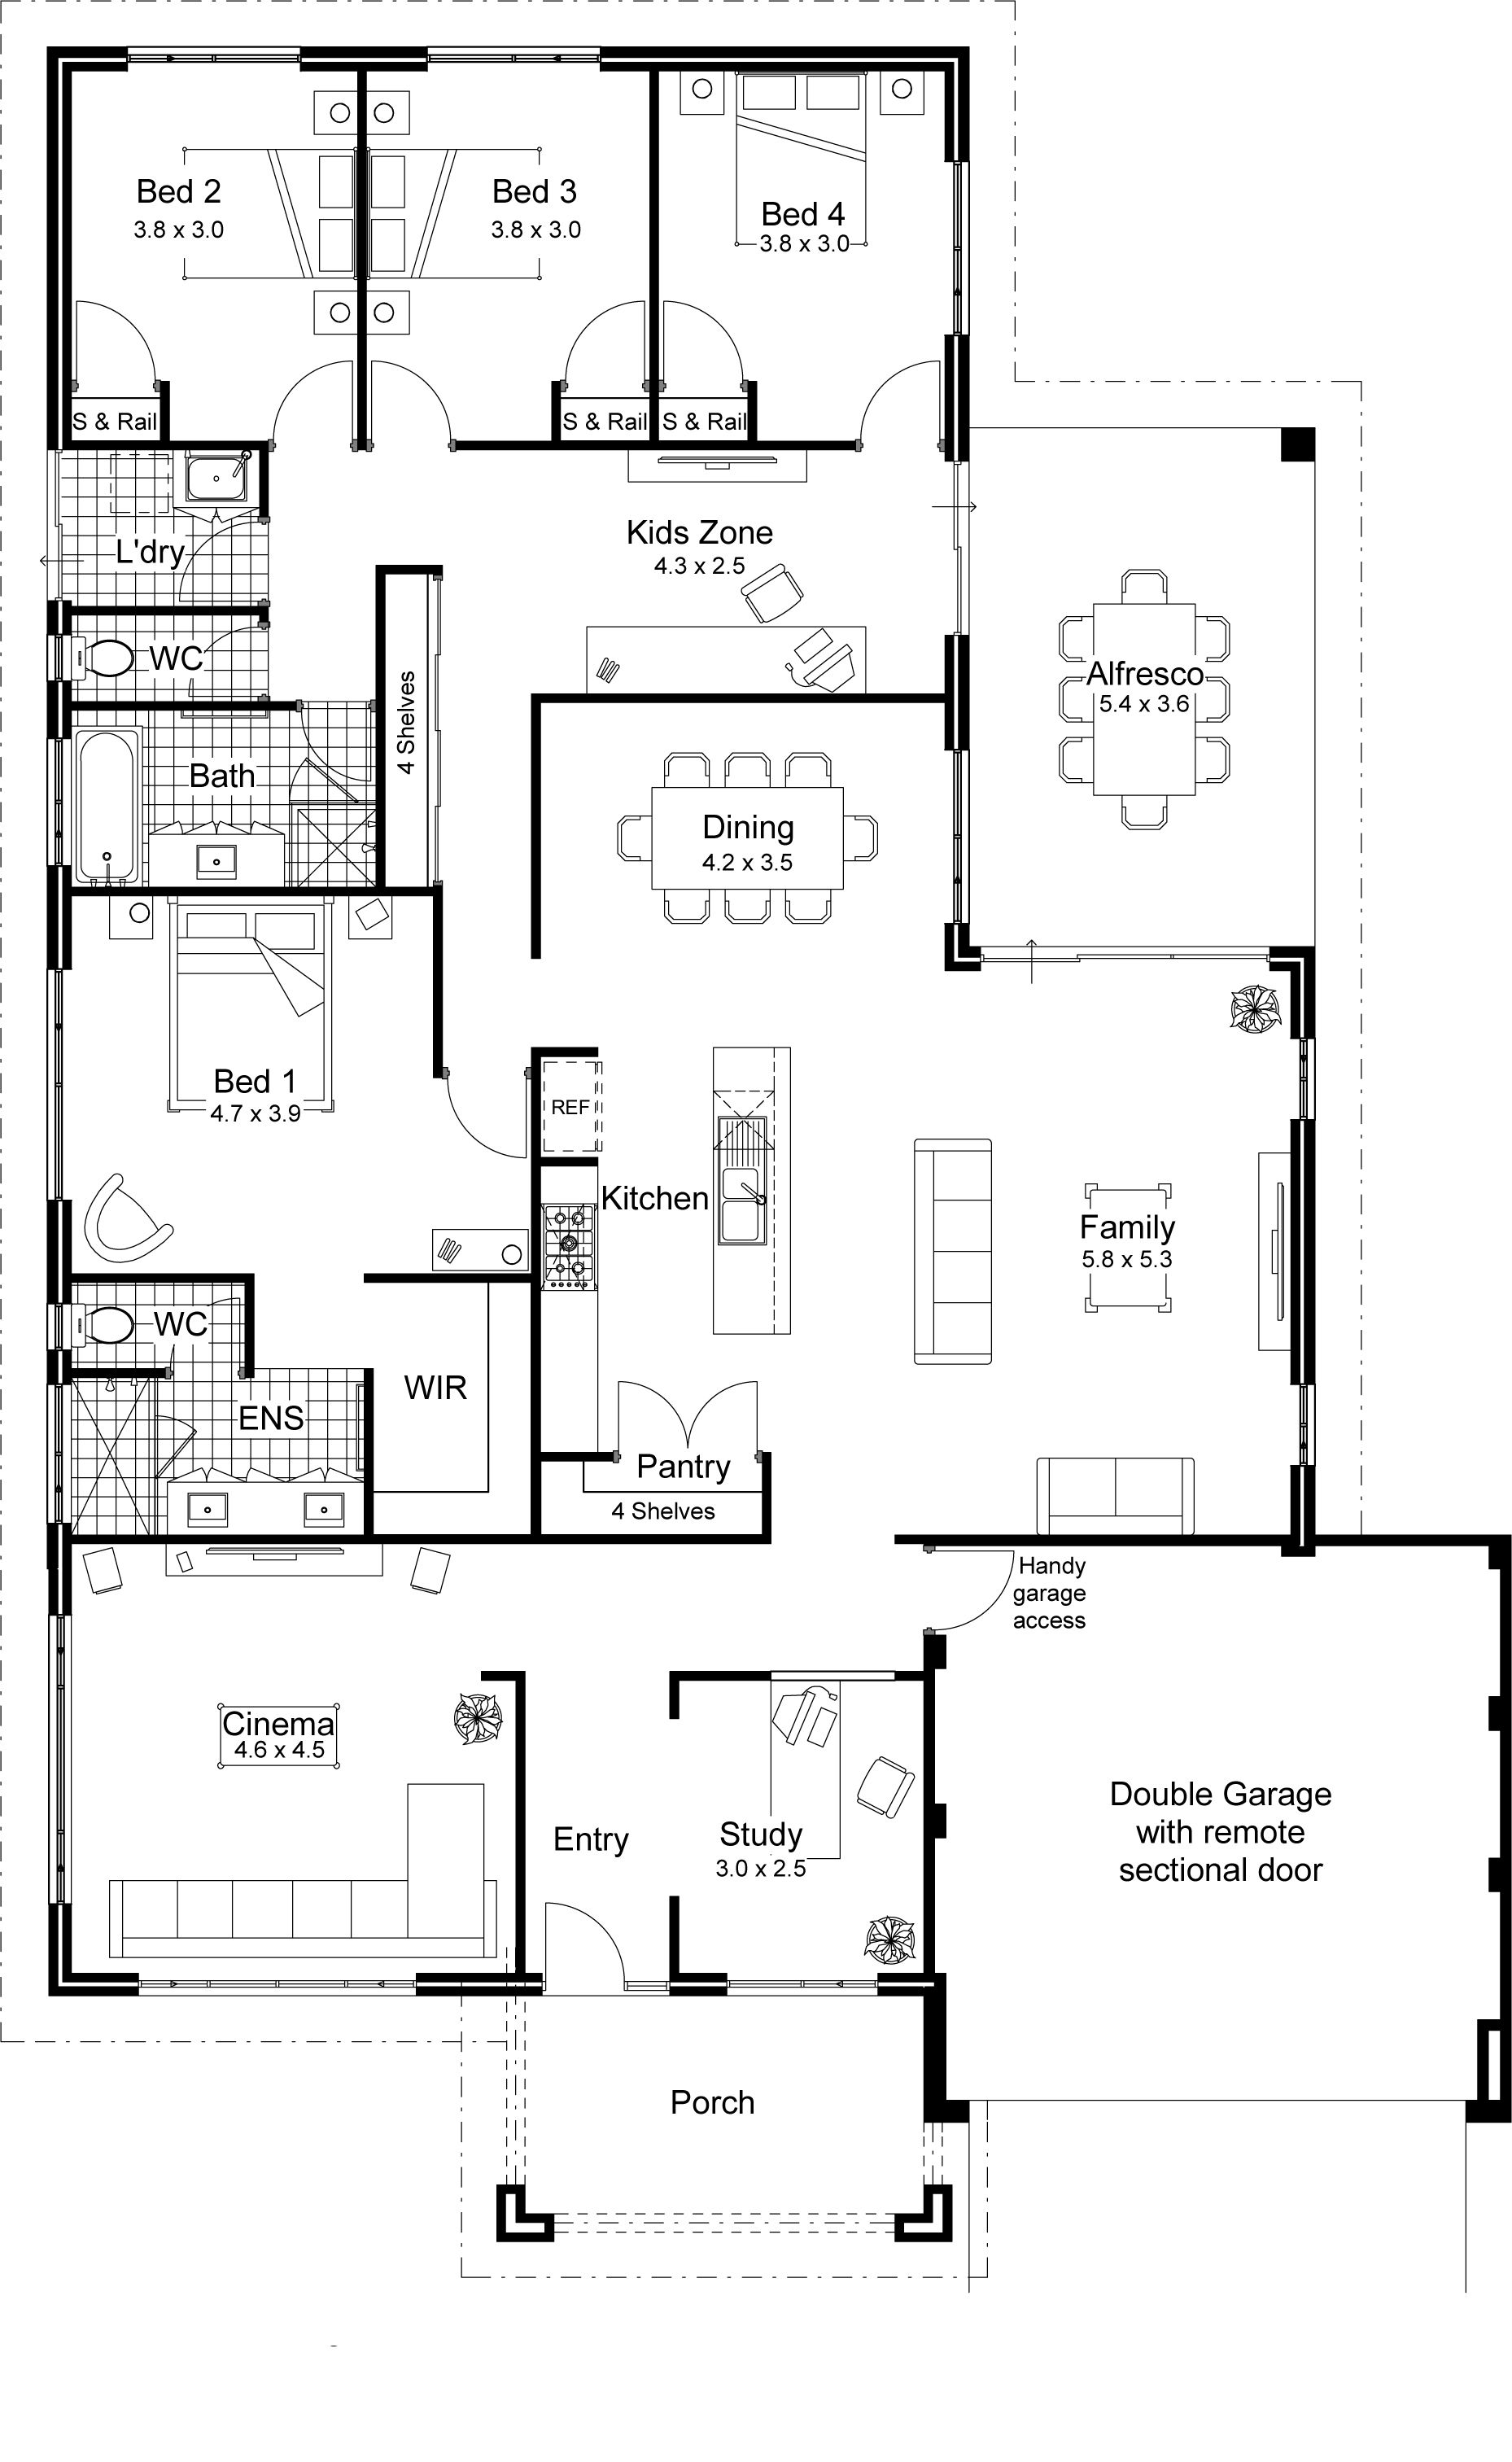 17 Best 1000 images about 2D AND 3D FLOOR PLAN DESIGN on Pinterest